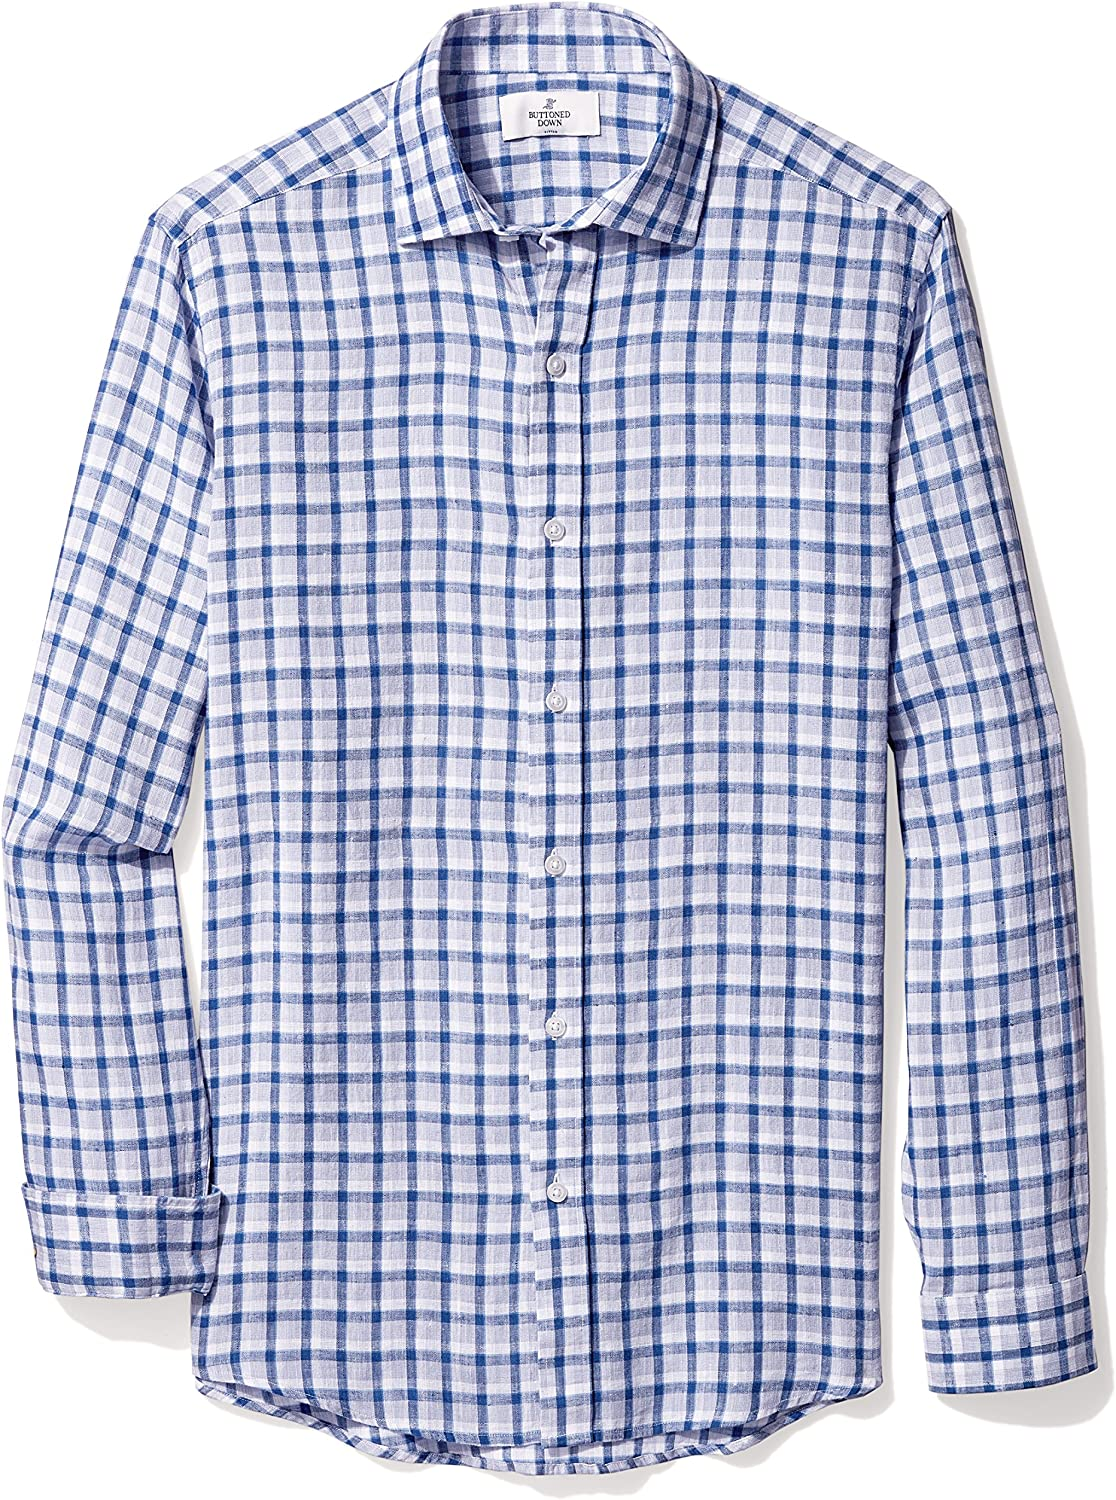 Amazon Brand - Buttoned Down Men's Fitted Casual Linen Cotton Shirt